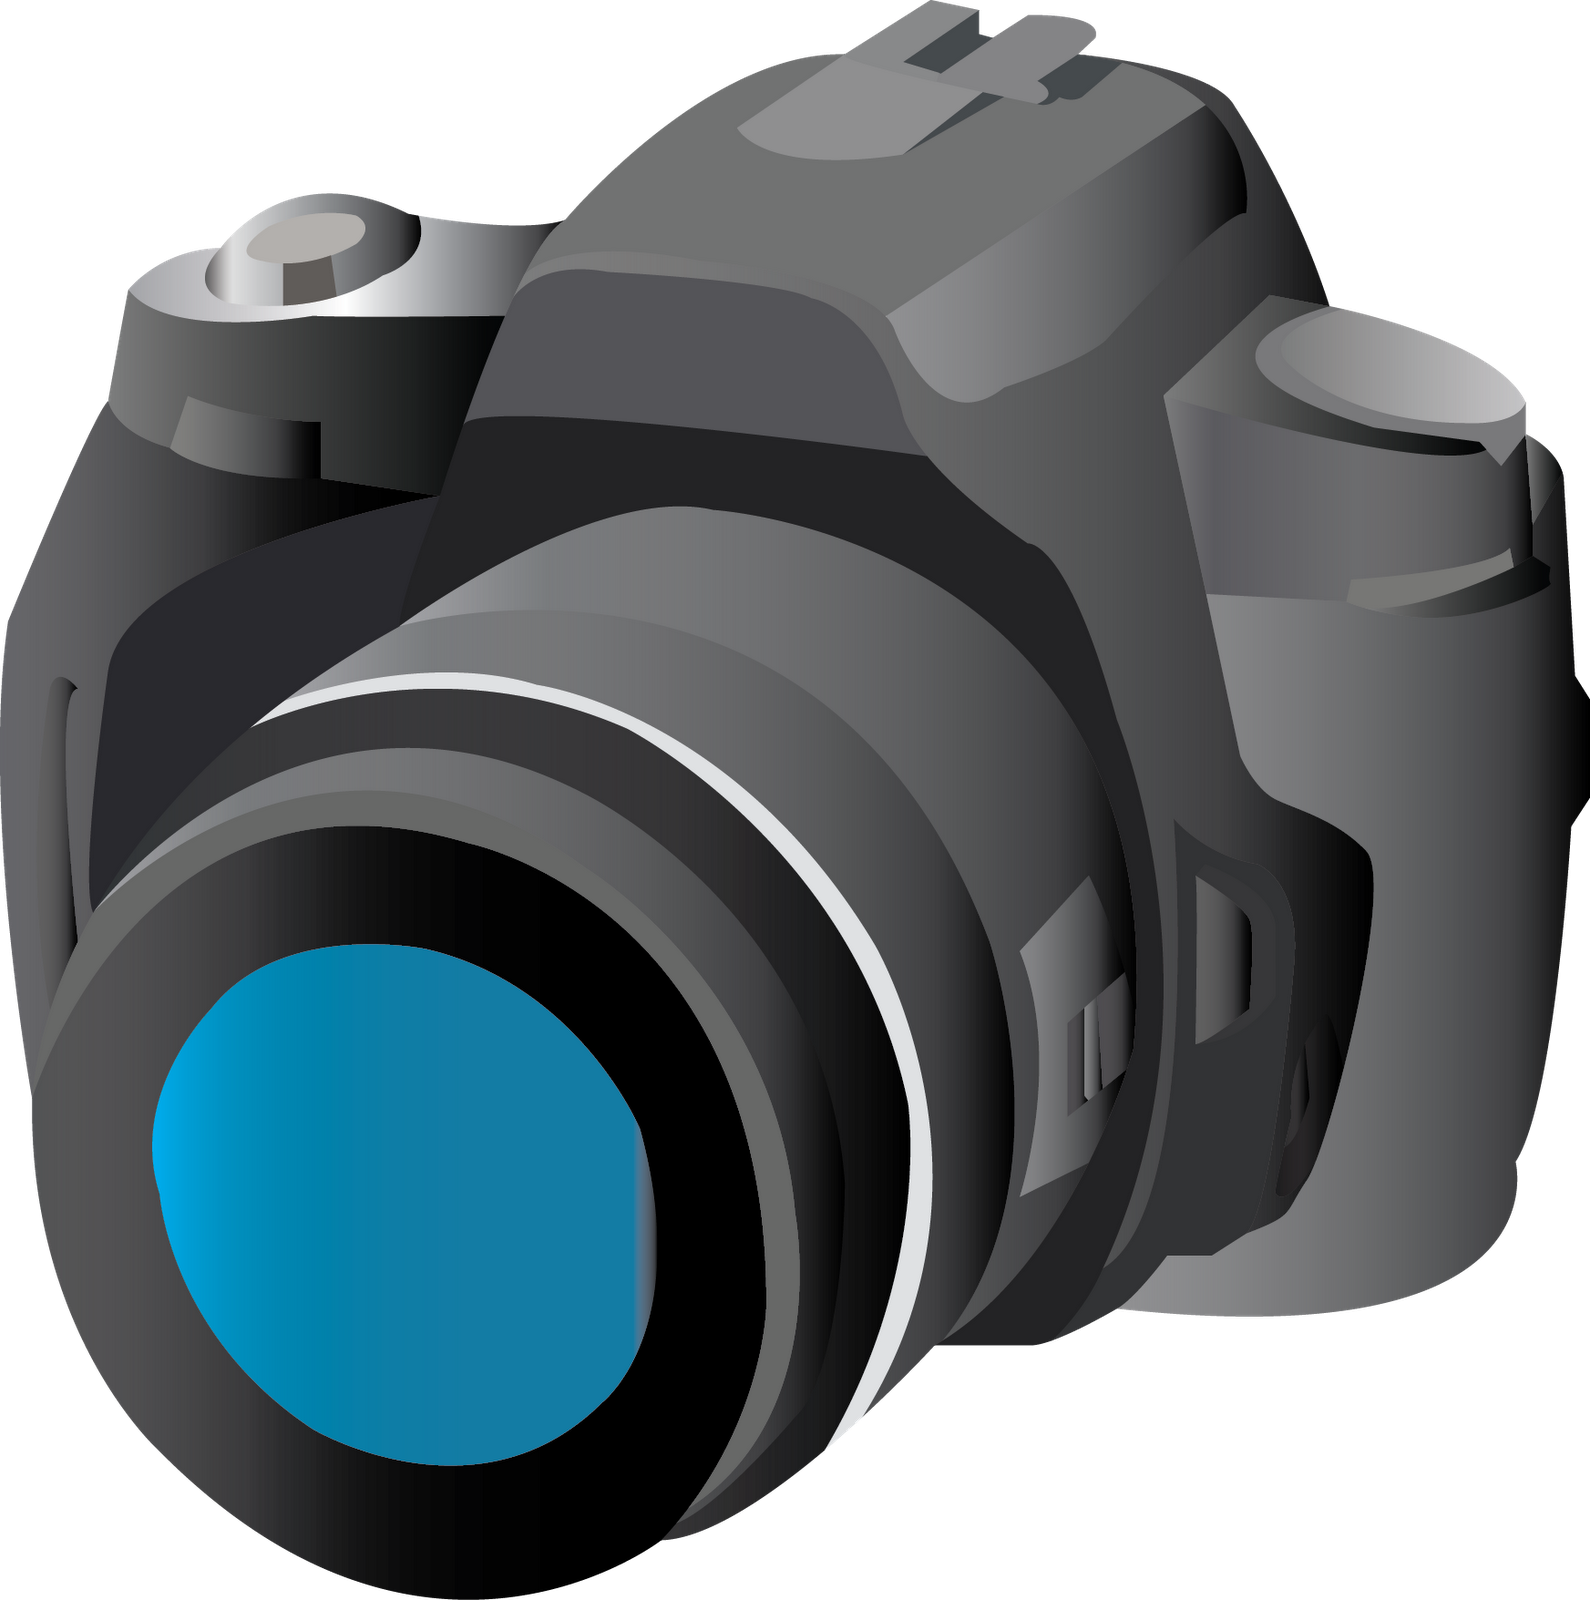 Dslr clipart camera lense Png  Camera Camera Dslr